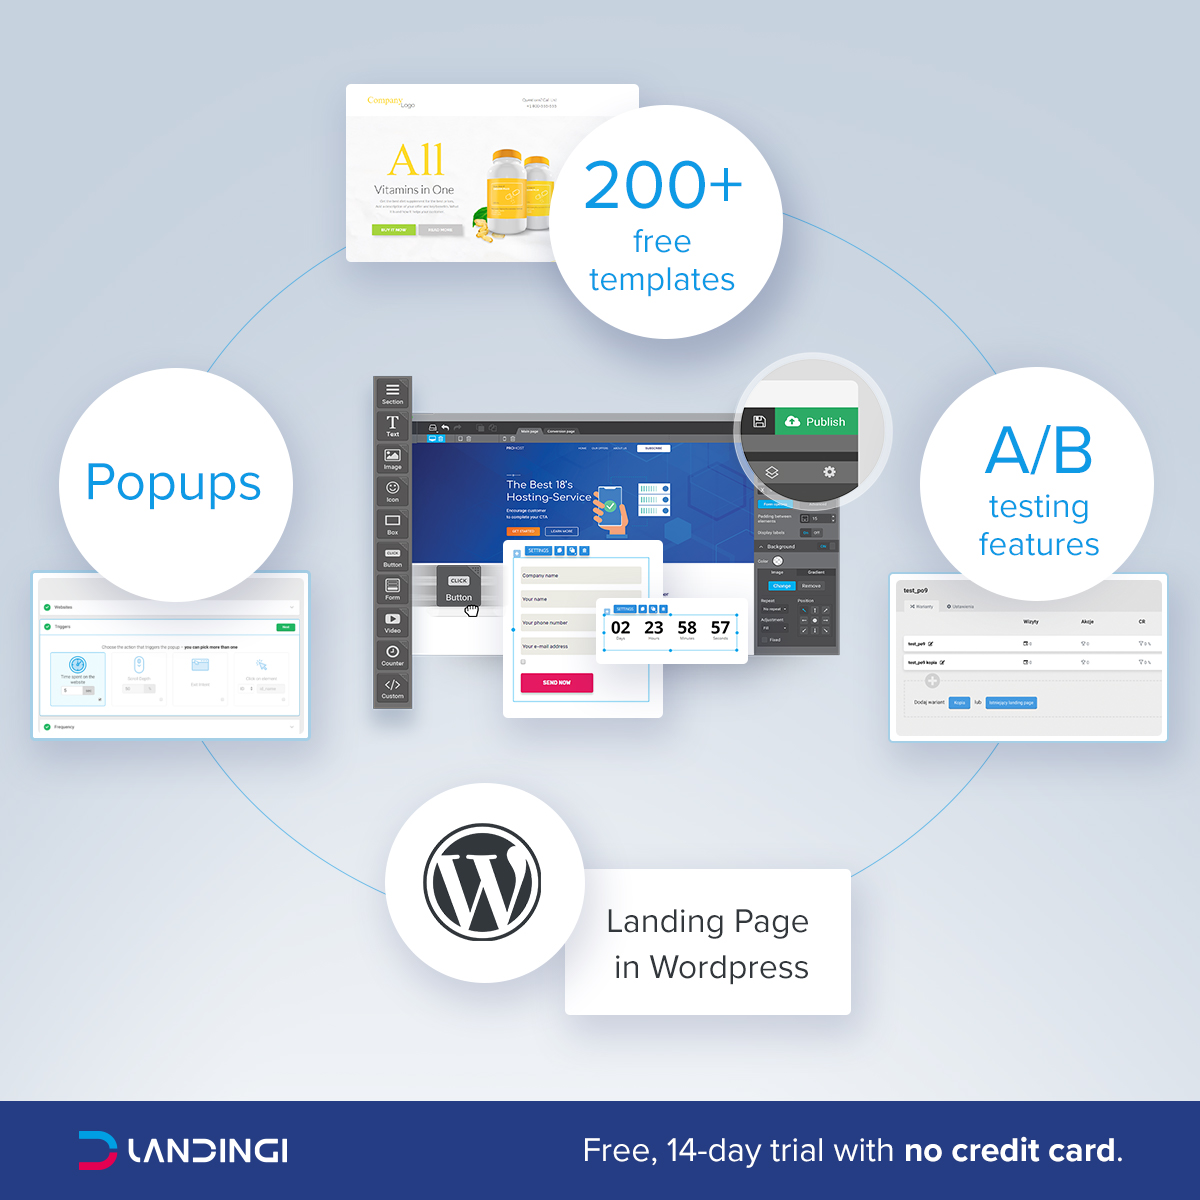 Landingi WordPress screenshot